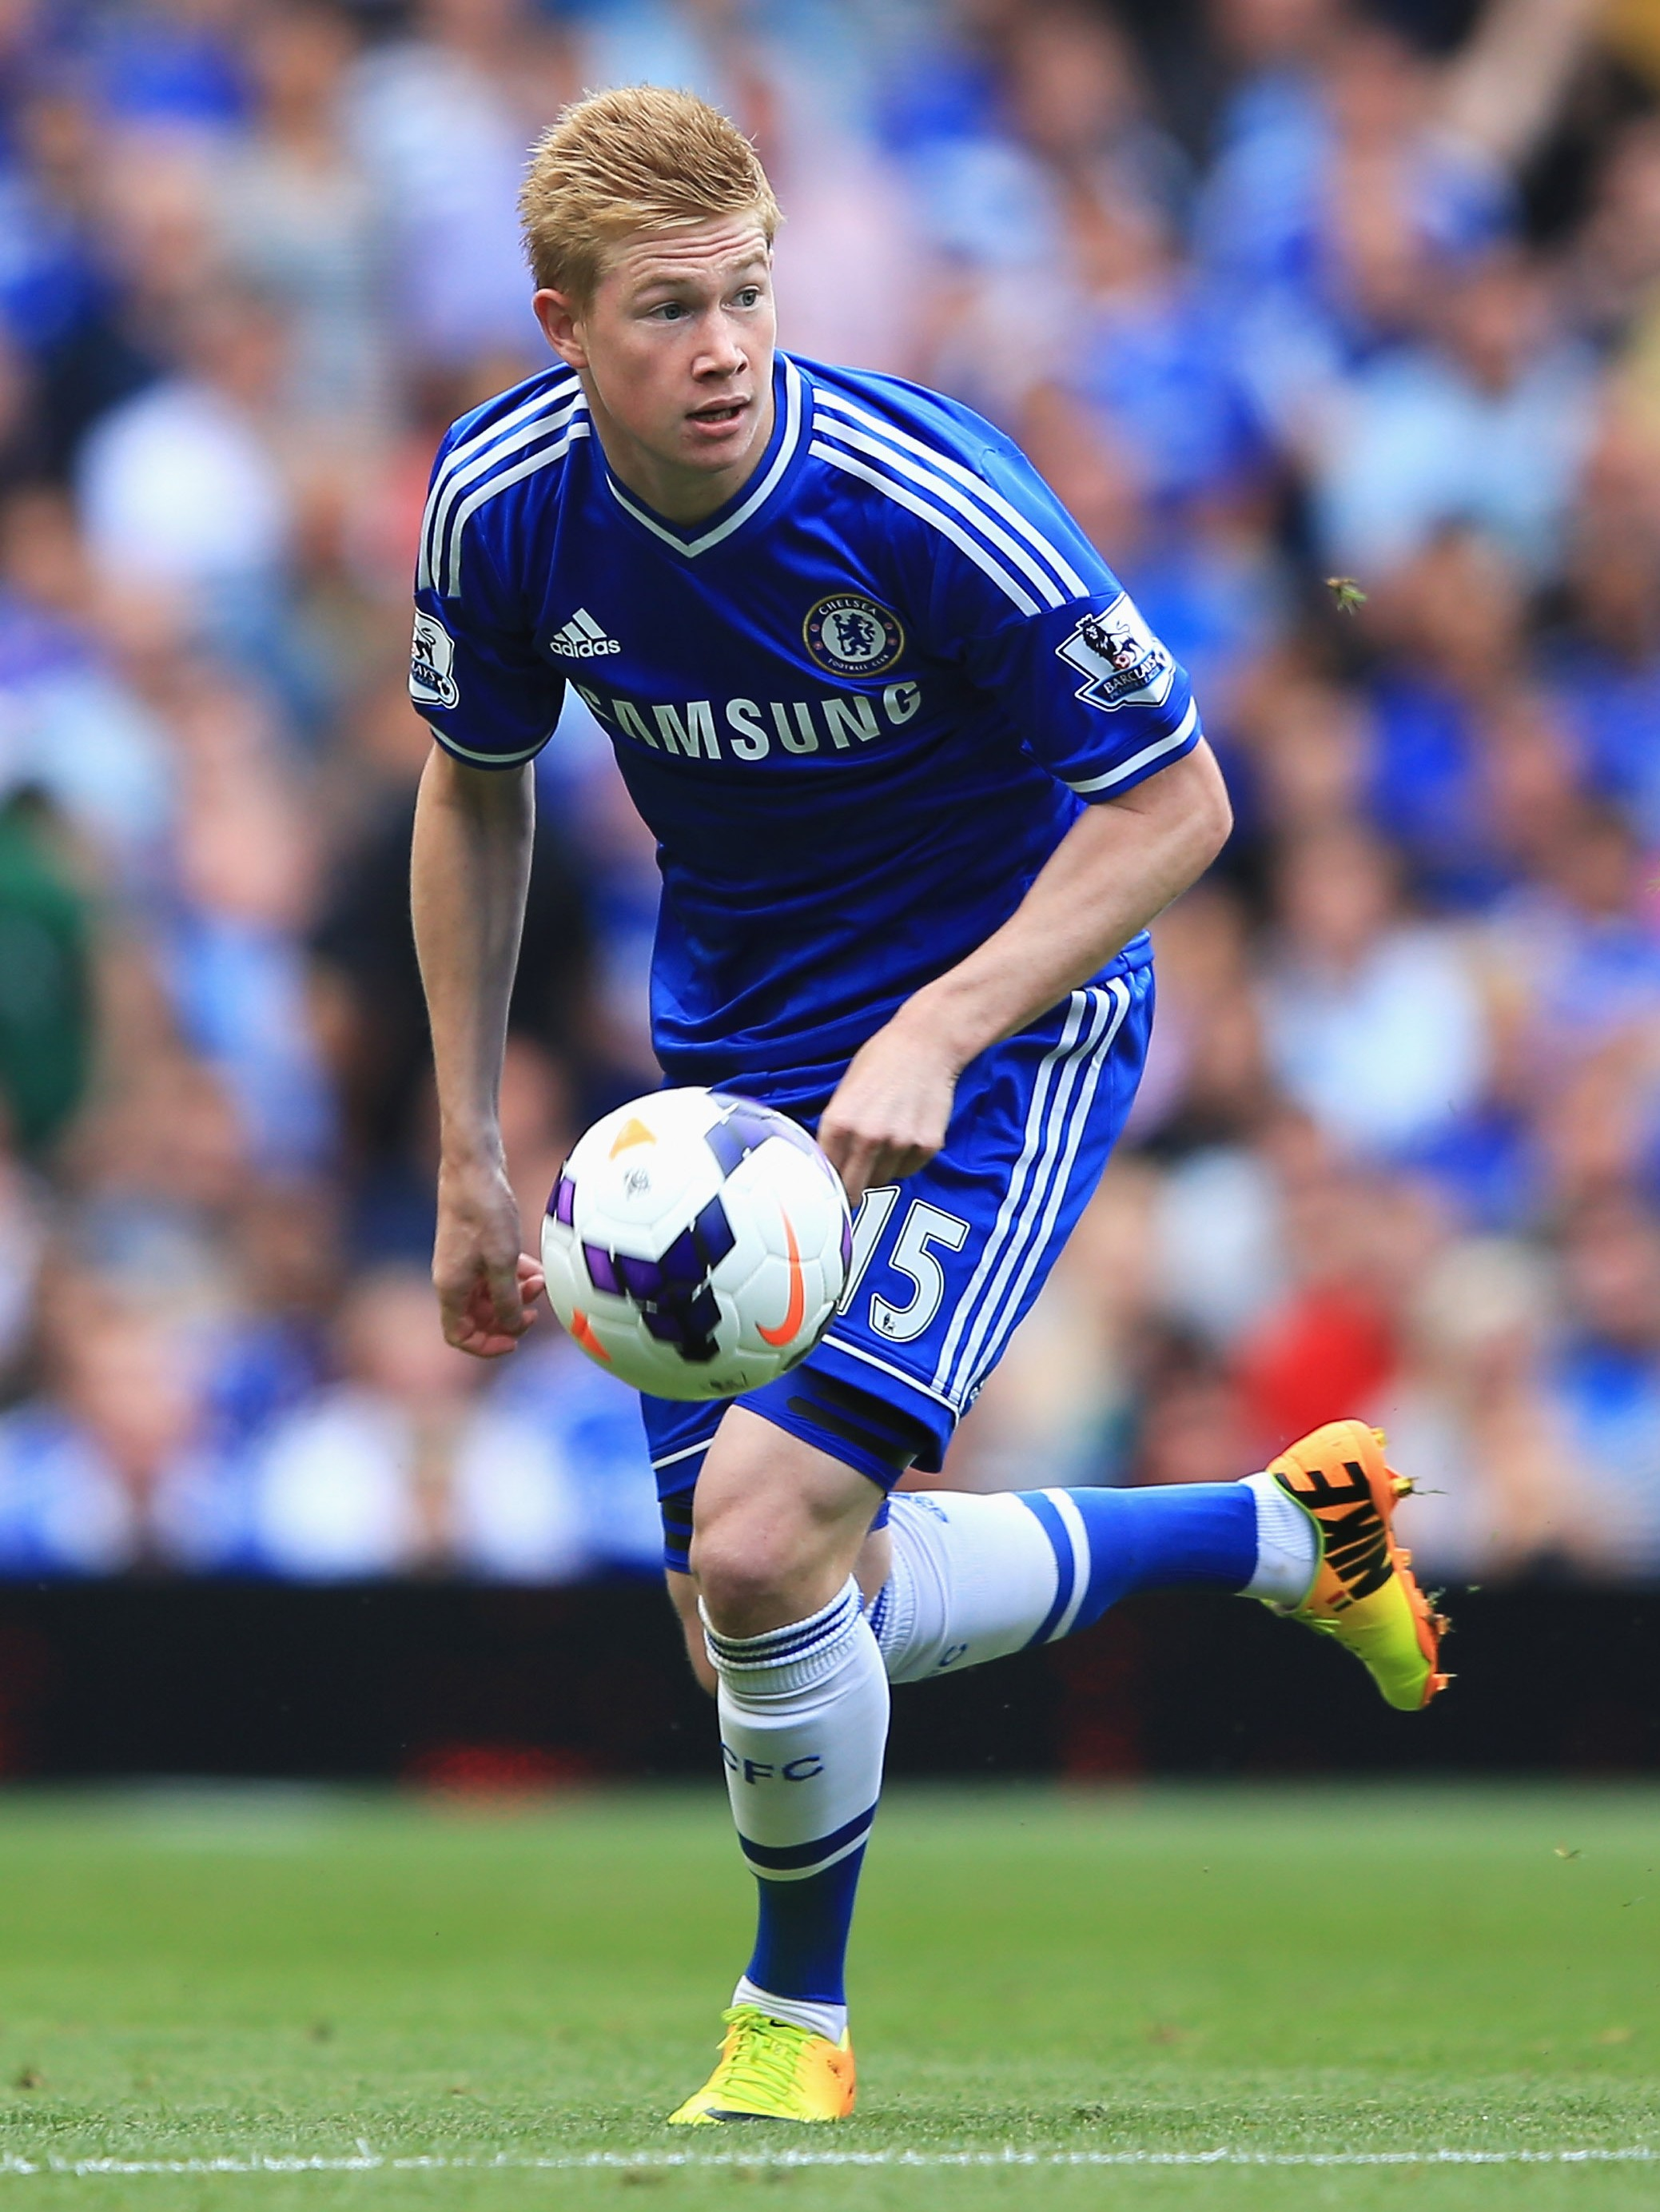 Anderlecht confirm talks with Chelsea over signing Kevin de Bruyne